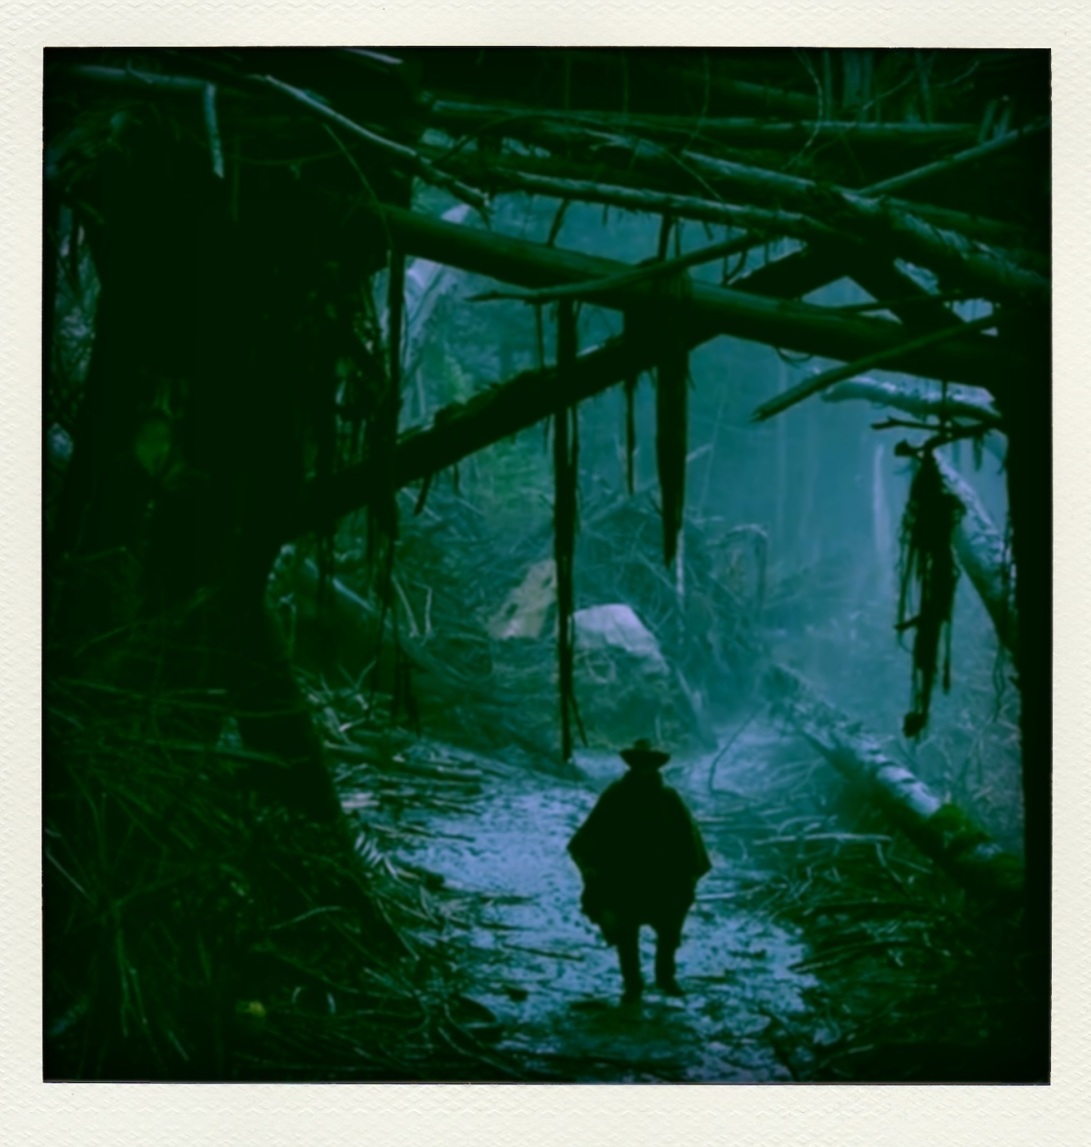 Dawn of The Planet of the Apes @ www.cinemascream.co.uk